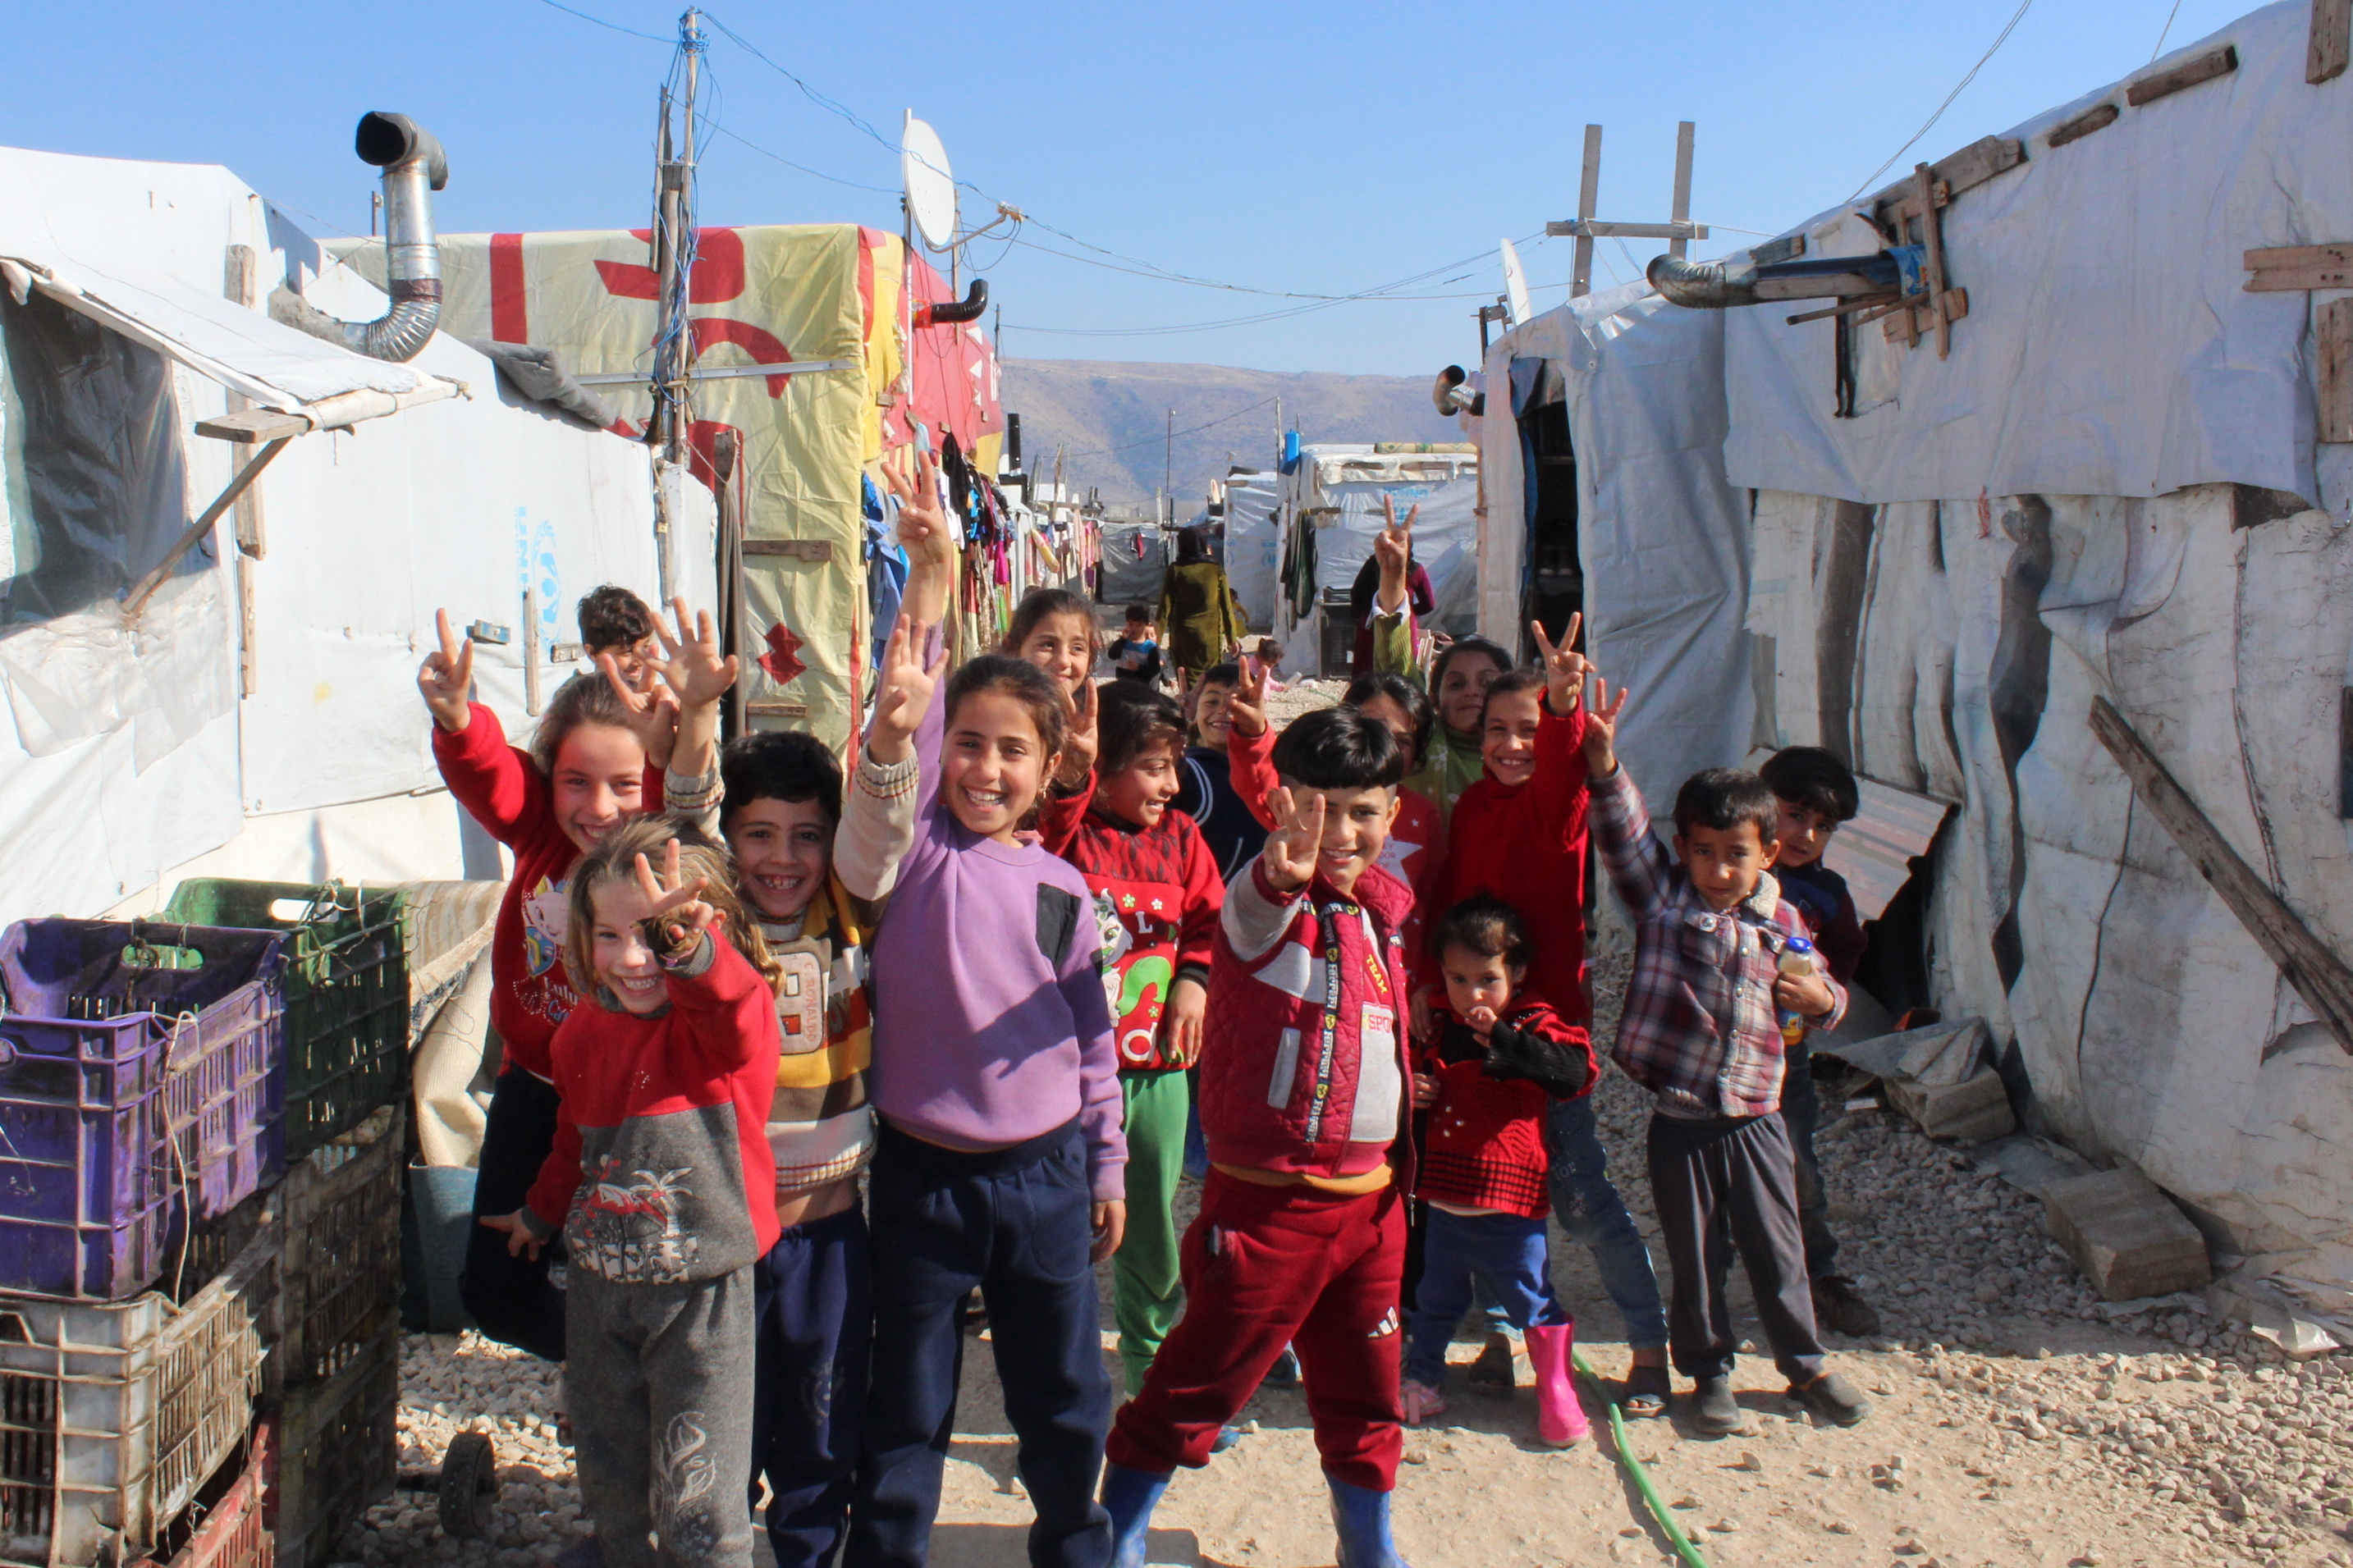 a group of children smiling, in the background are tents of a refugee camp